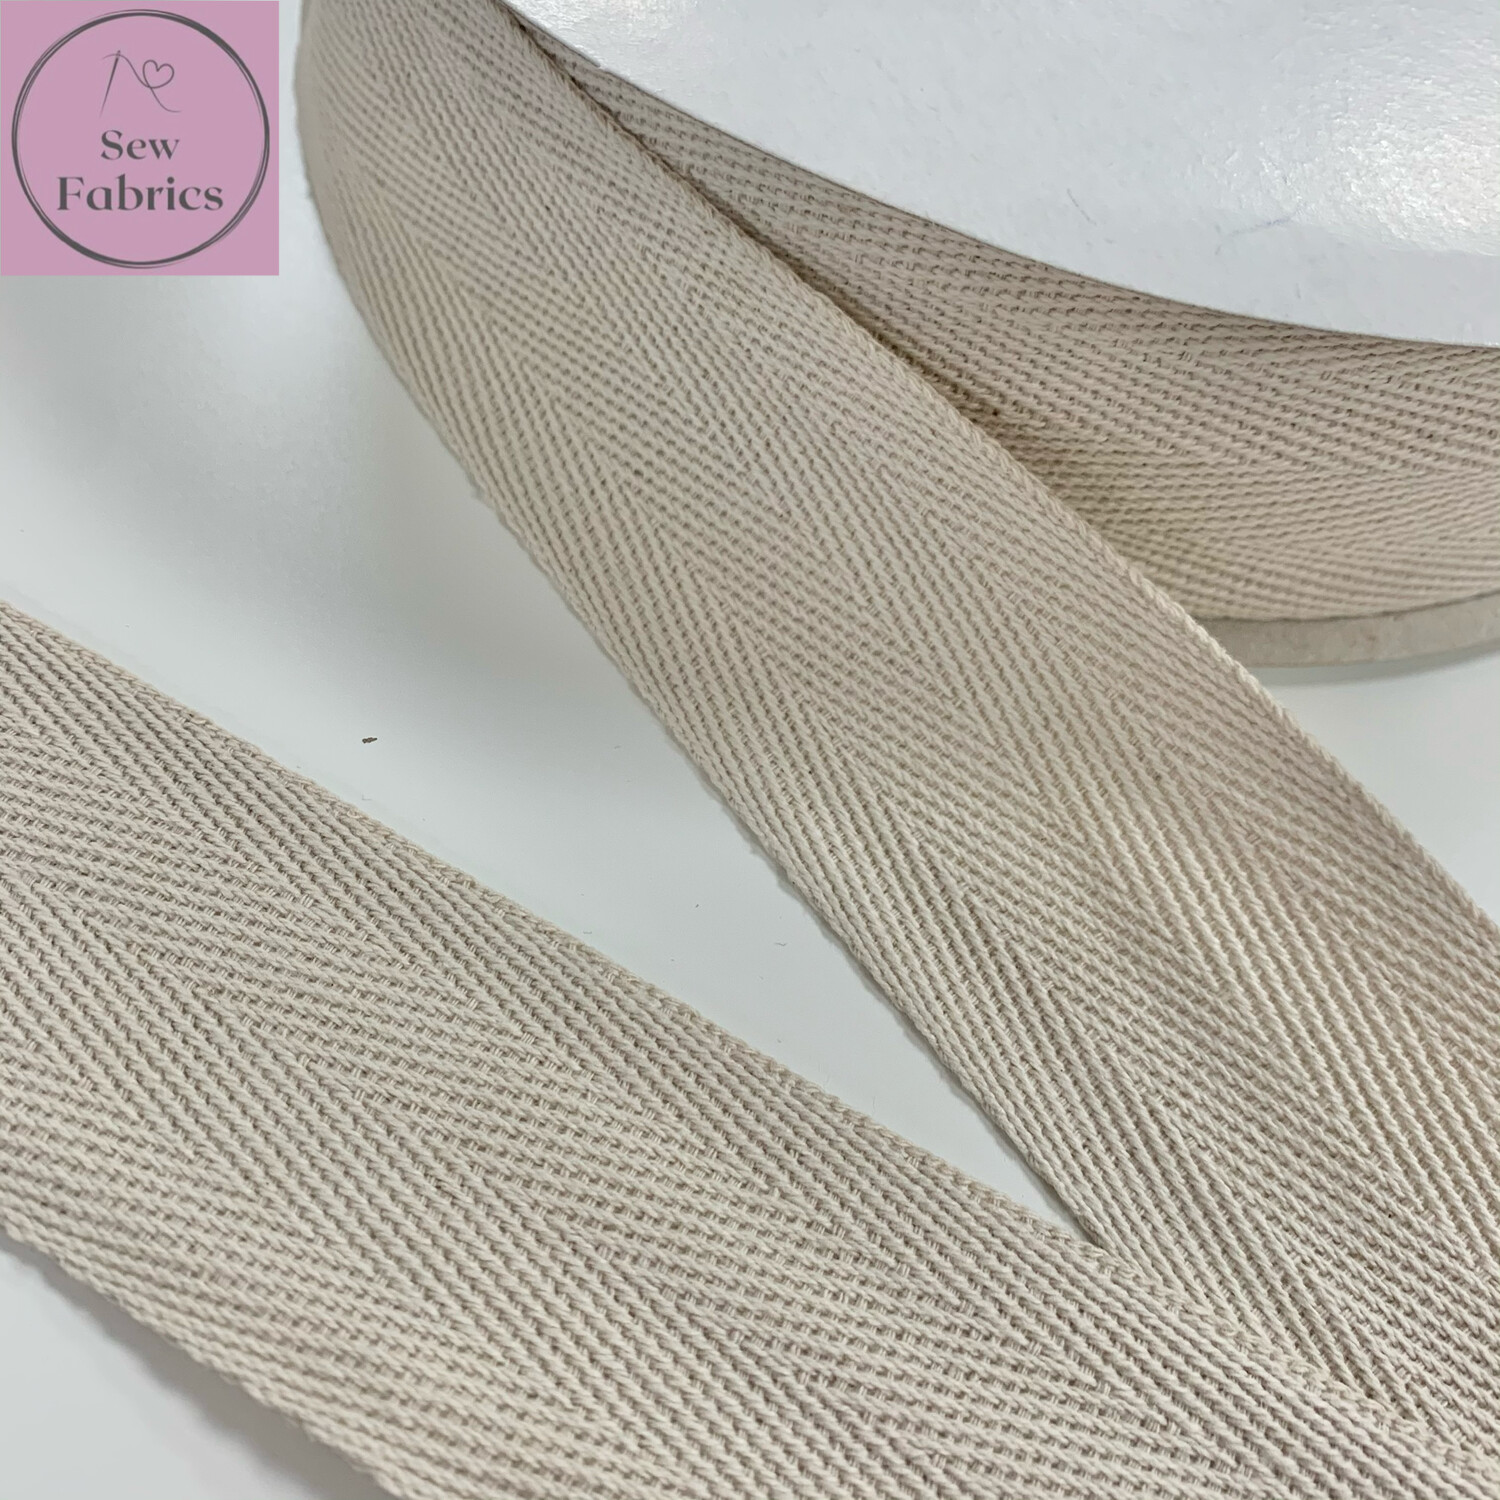 5mts x Bertie's Bows Light Natural 40mm Cotton Herringbone Webbing Tape